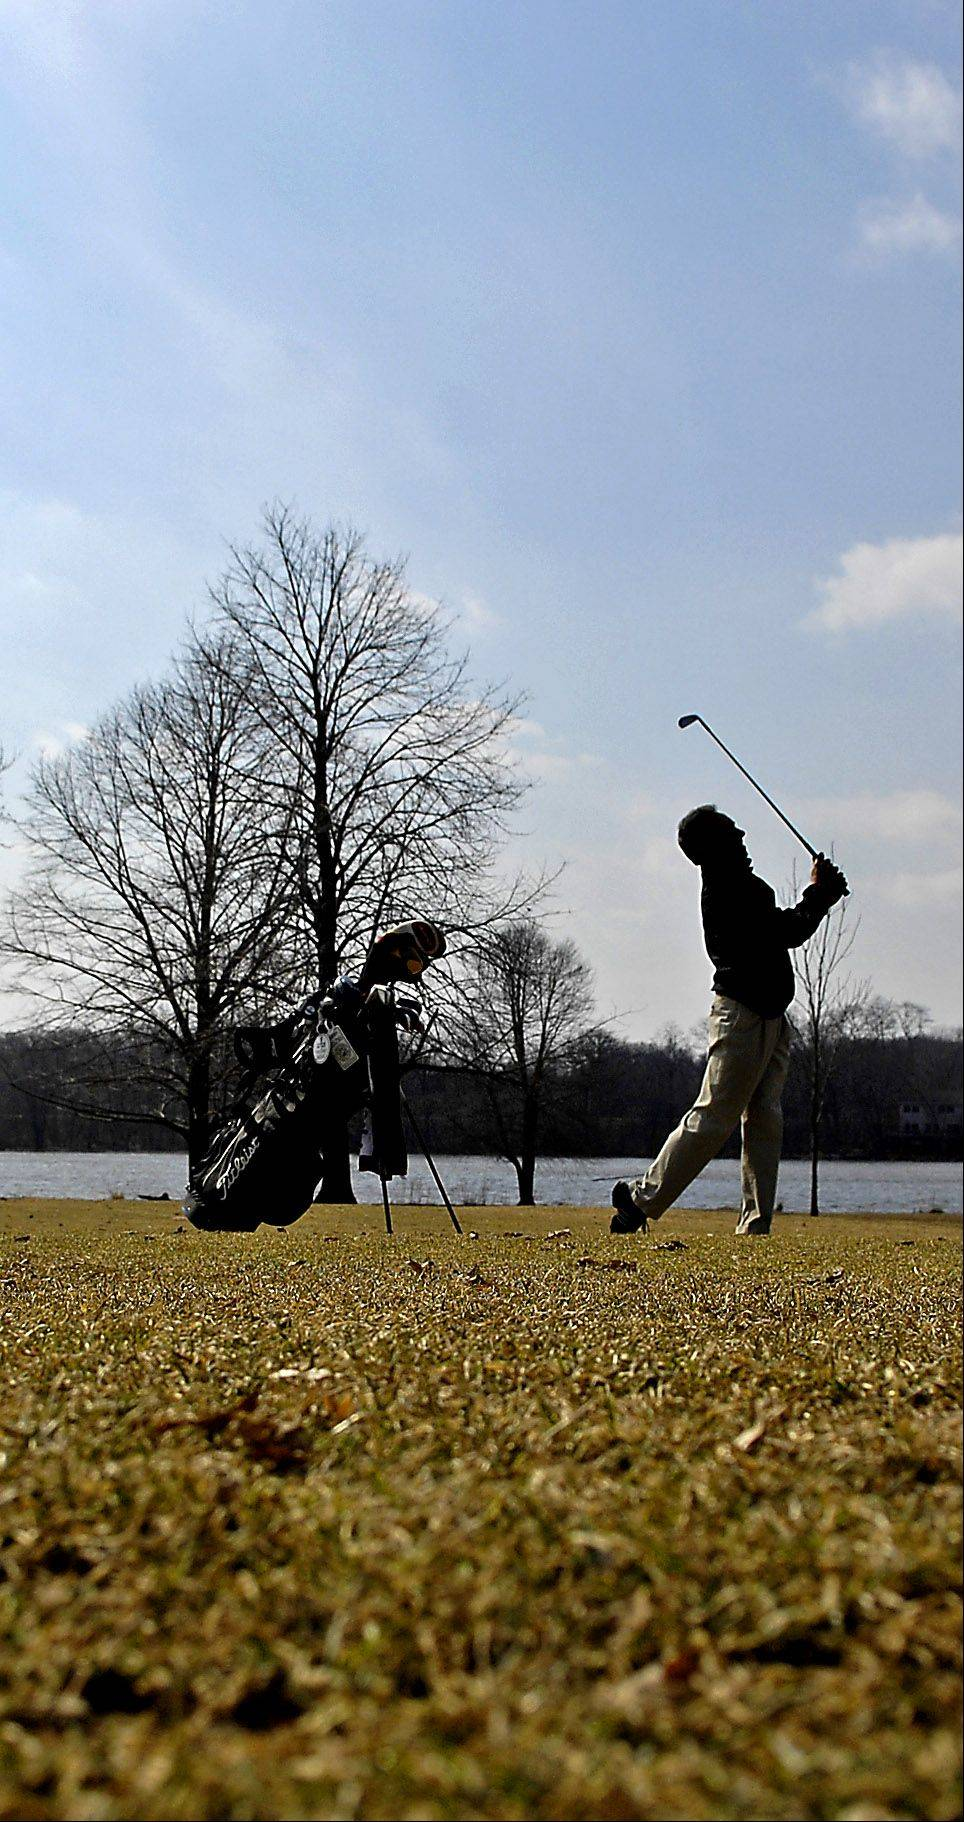 Brian Charles of St. Charles hits the links at Pottawatomie Park Golf Course in St. Charles as they open for the first time this season. Charles won the St. Charles city championship last year and was eager to get back out today when he saw the temperature this morning.